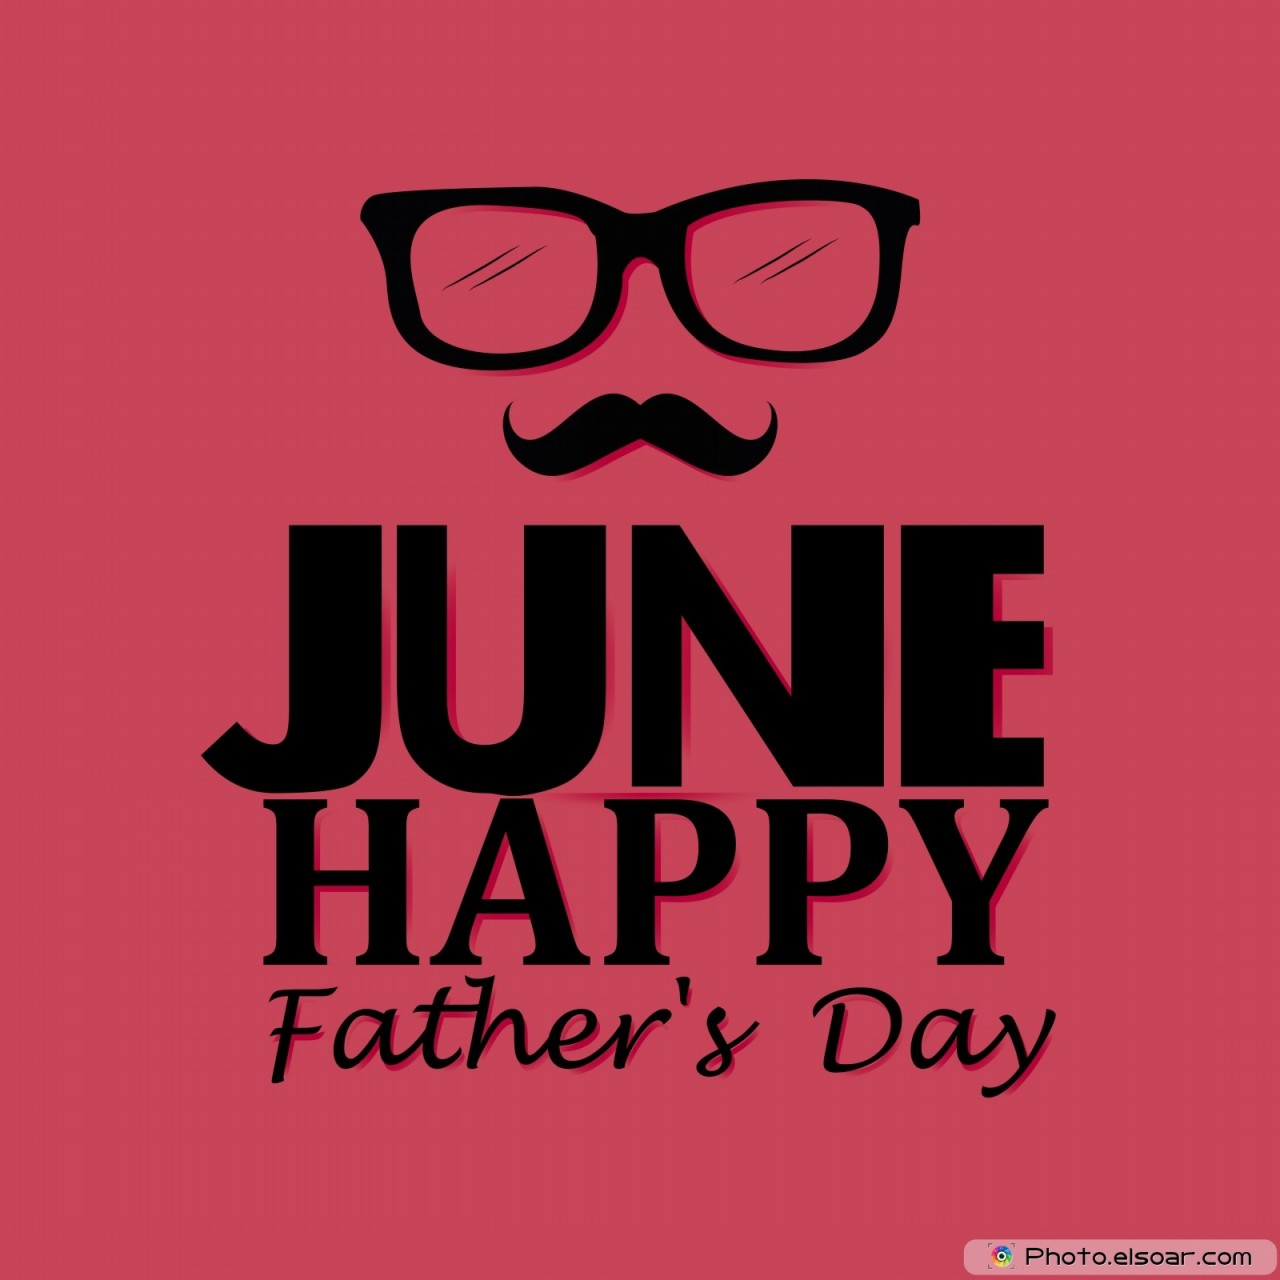 June. Happy father's day on red background